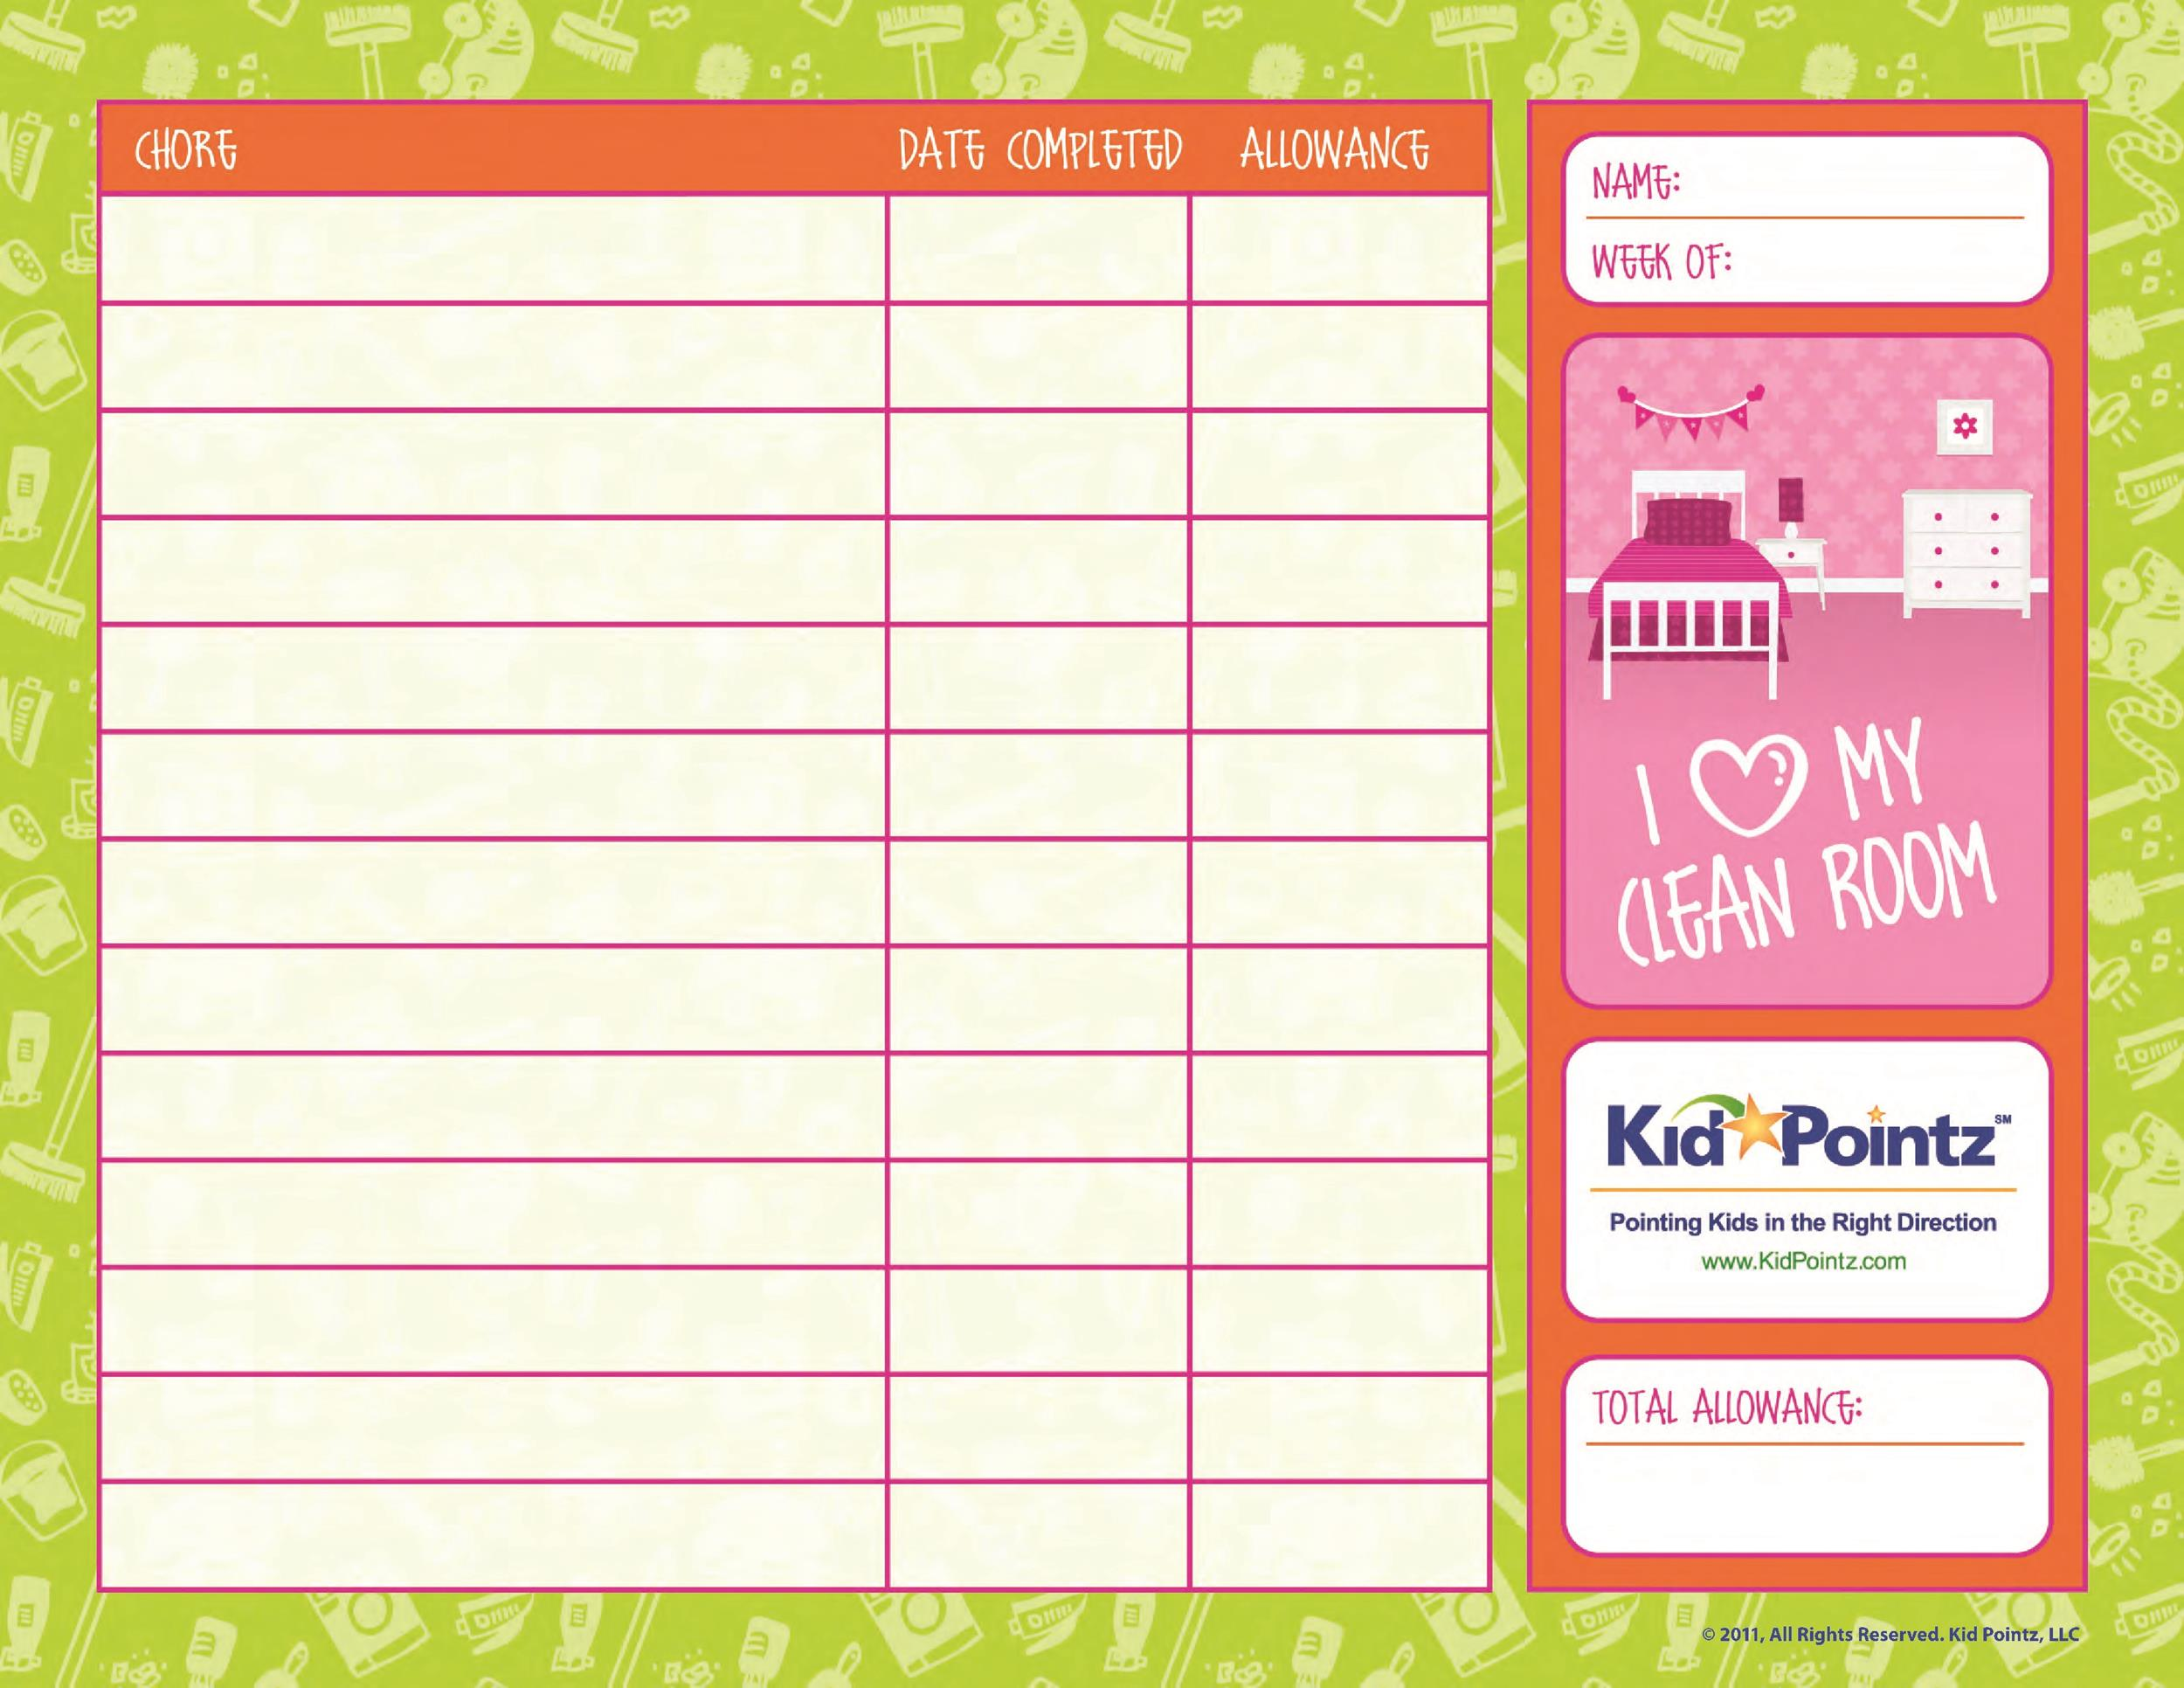 photograph about Printable Allowance Chore Chart named 43 No cost Chore Chart Templates for Youngsters ᐅ Template Lab